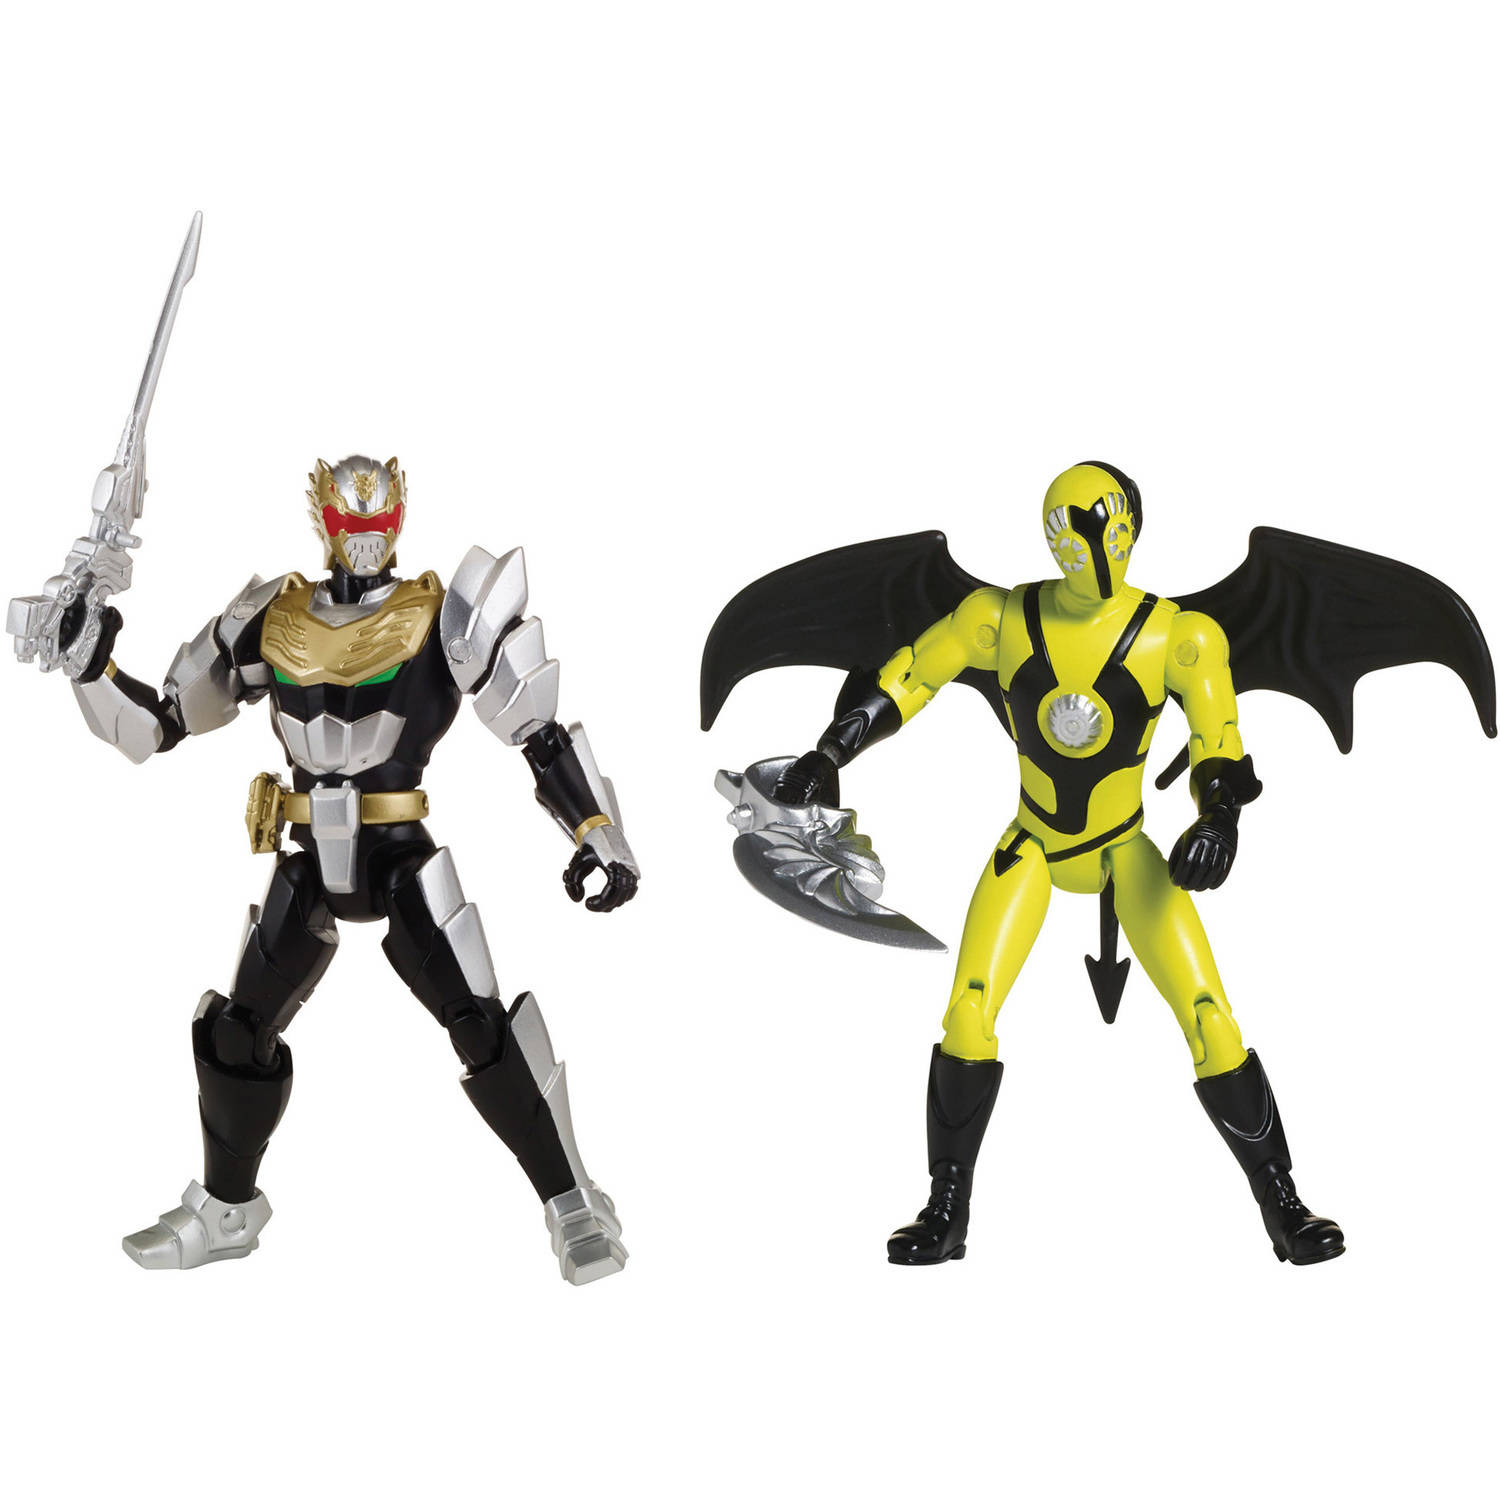 Bandai America Power Rangers 5 Inch Action Figure Good vs Evil, MF Roboknight vs MF Zombat by Bandai America